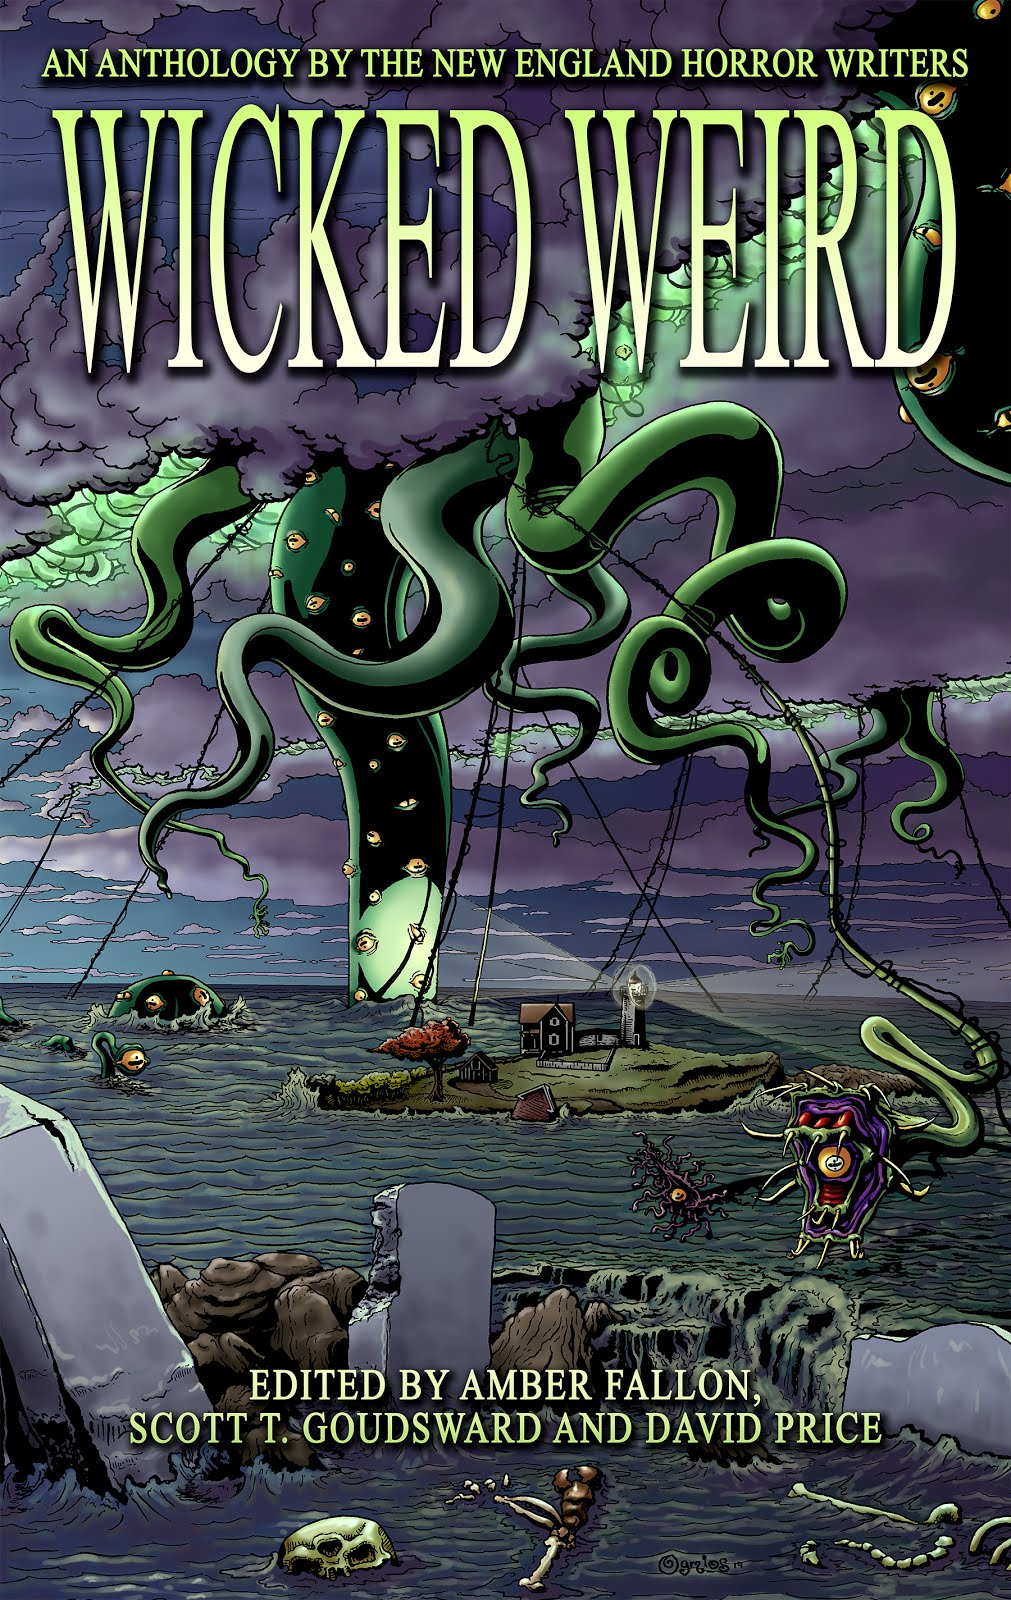 Wicked Wierd - the 6th Book